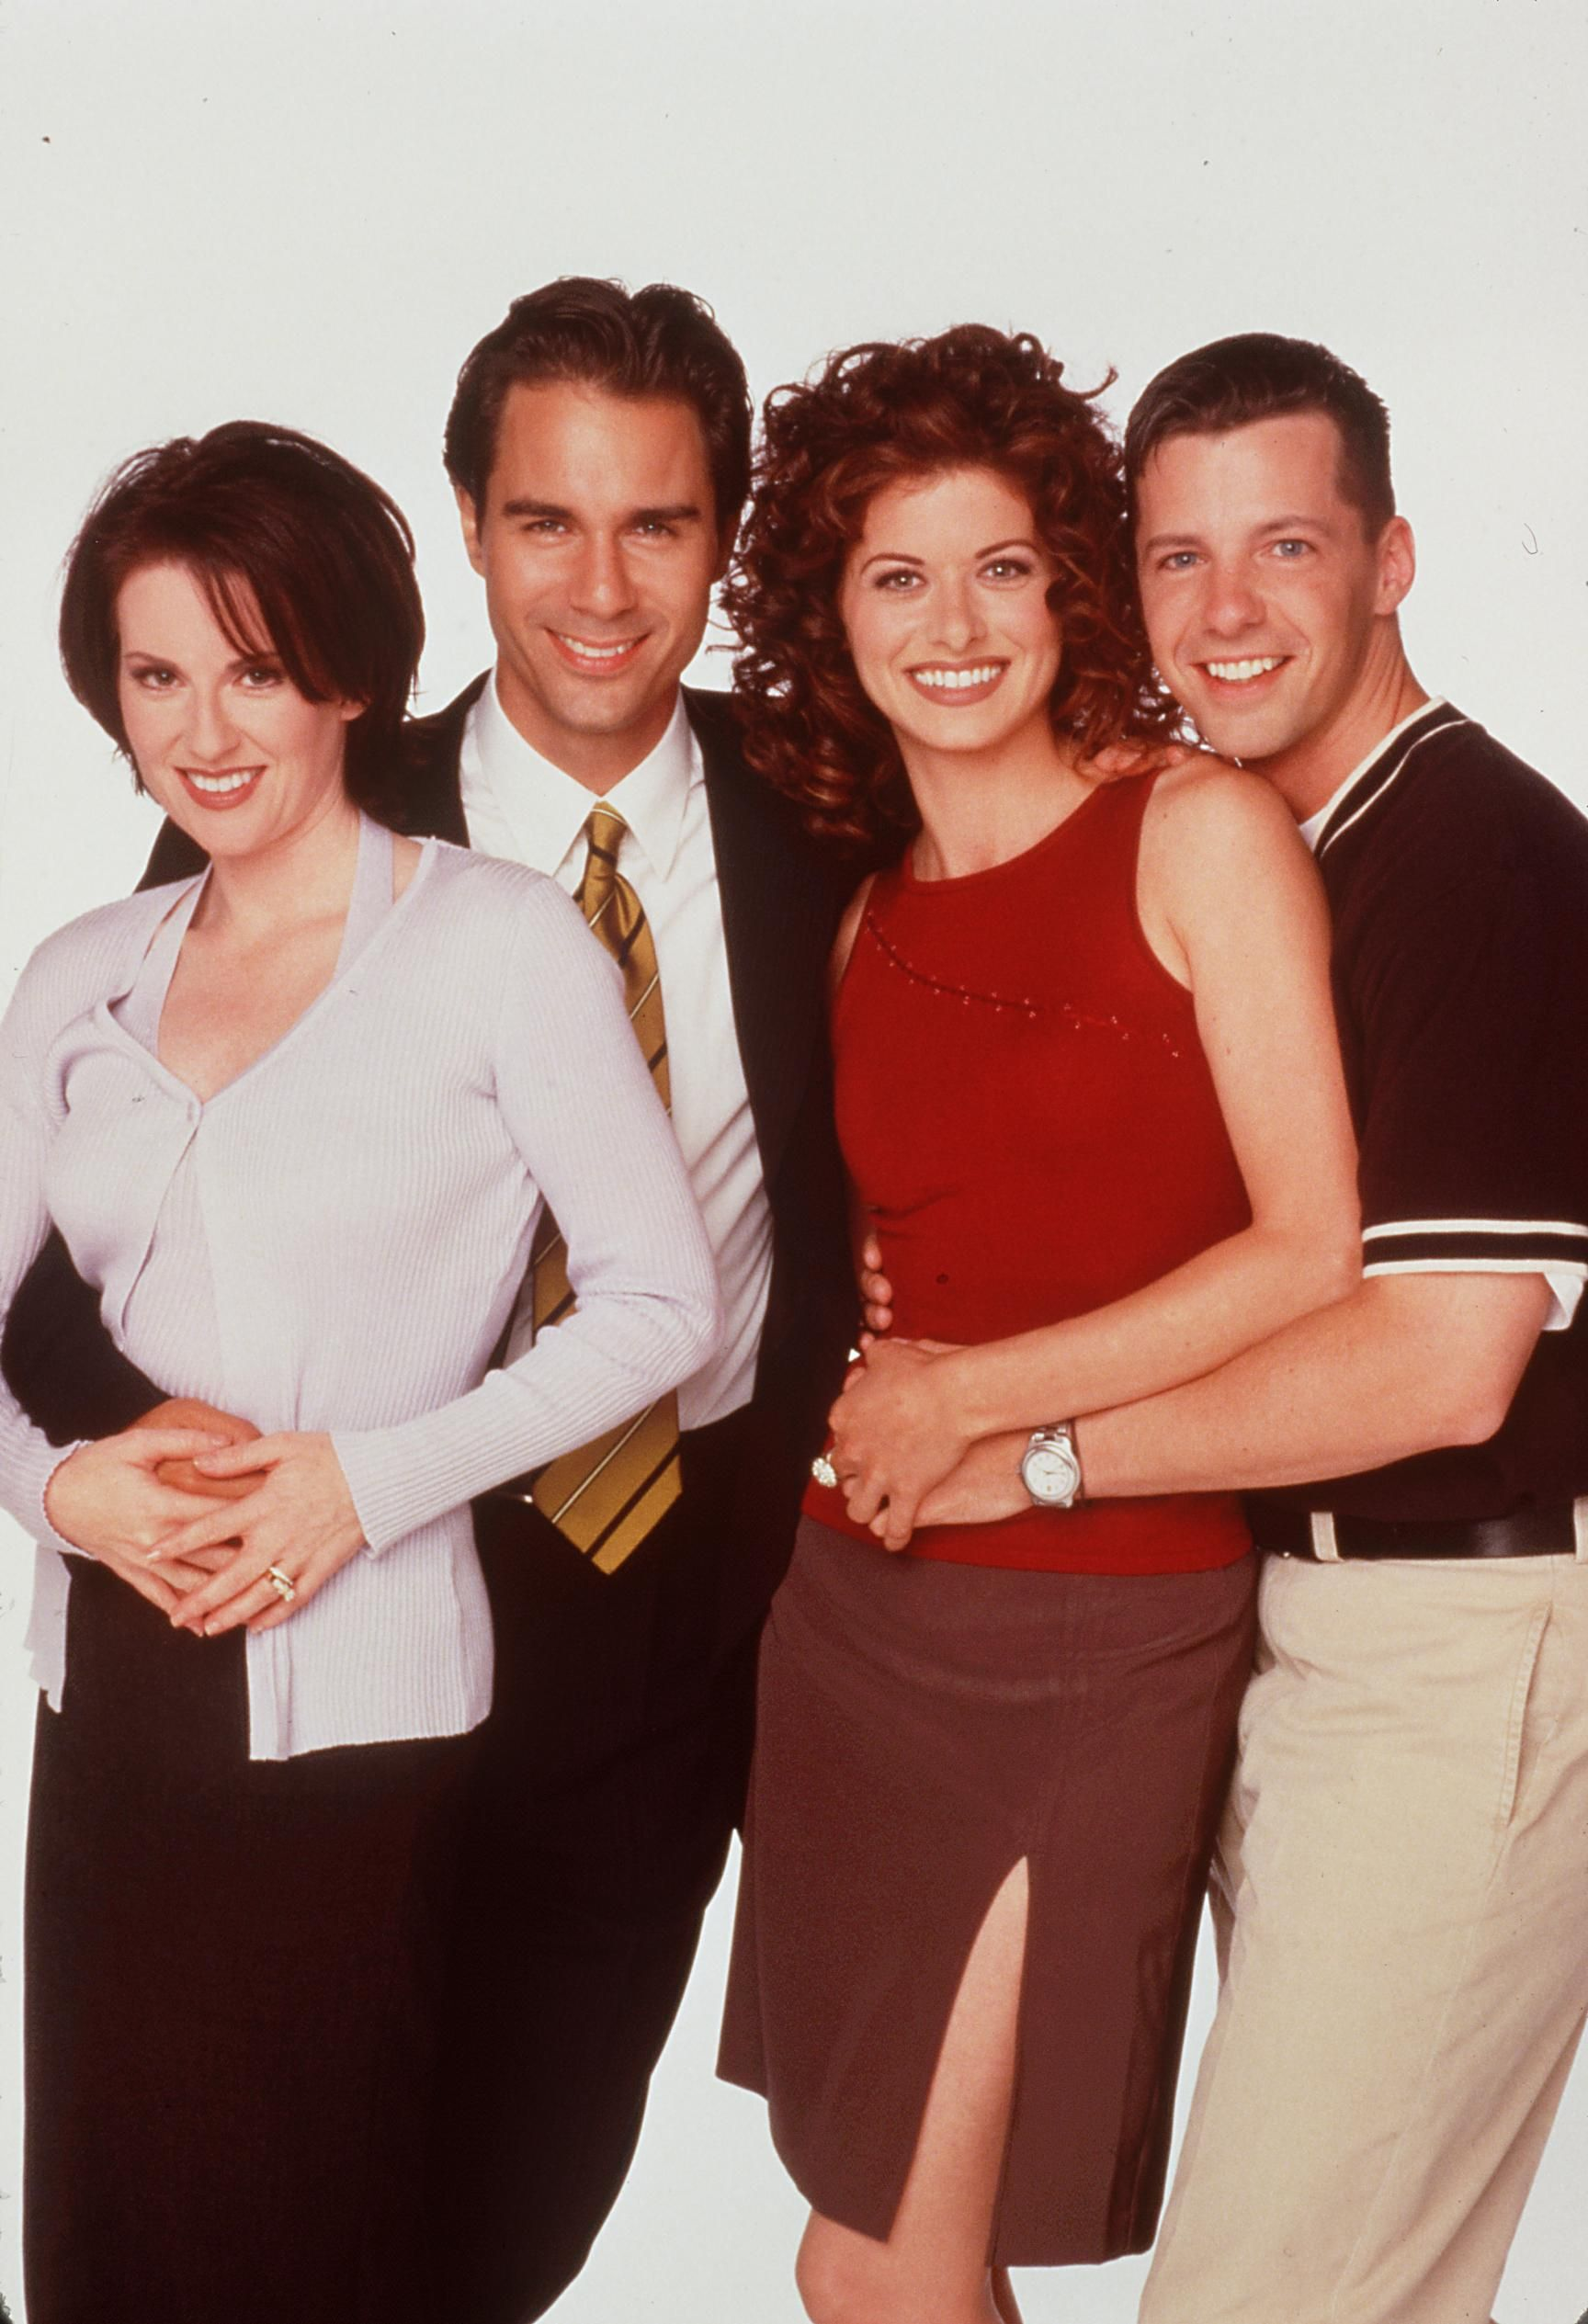 """Megan Mullally, Eric McCormack, Debra Messing, and Sean Hayes star in """"Will & Grace"""" in 2000 